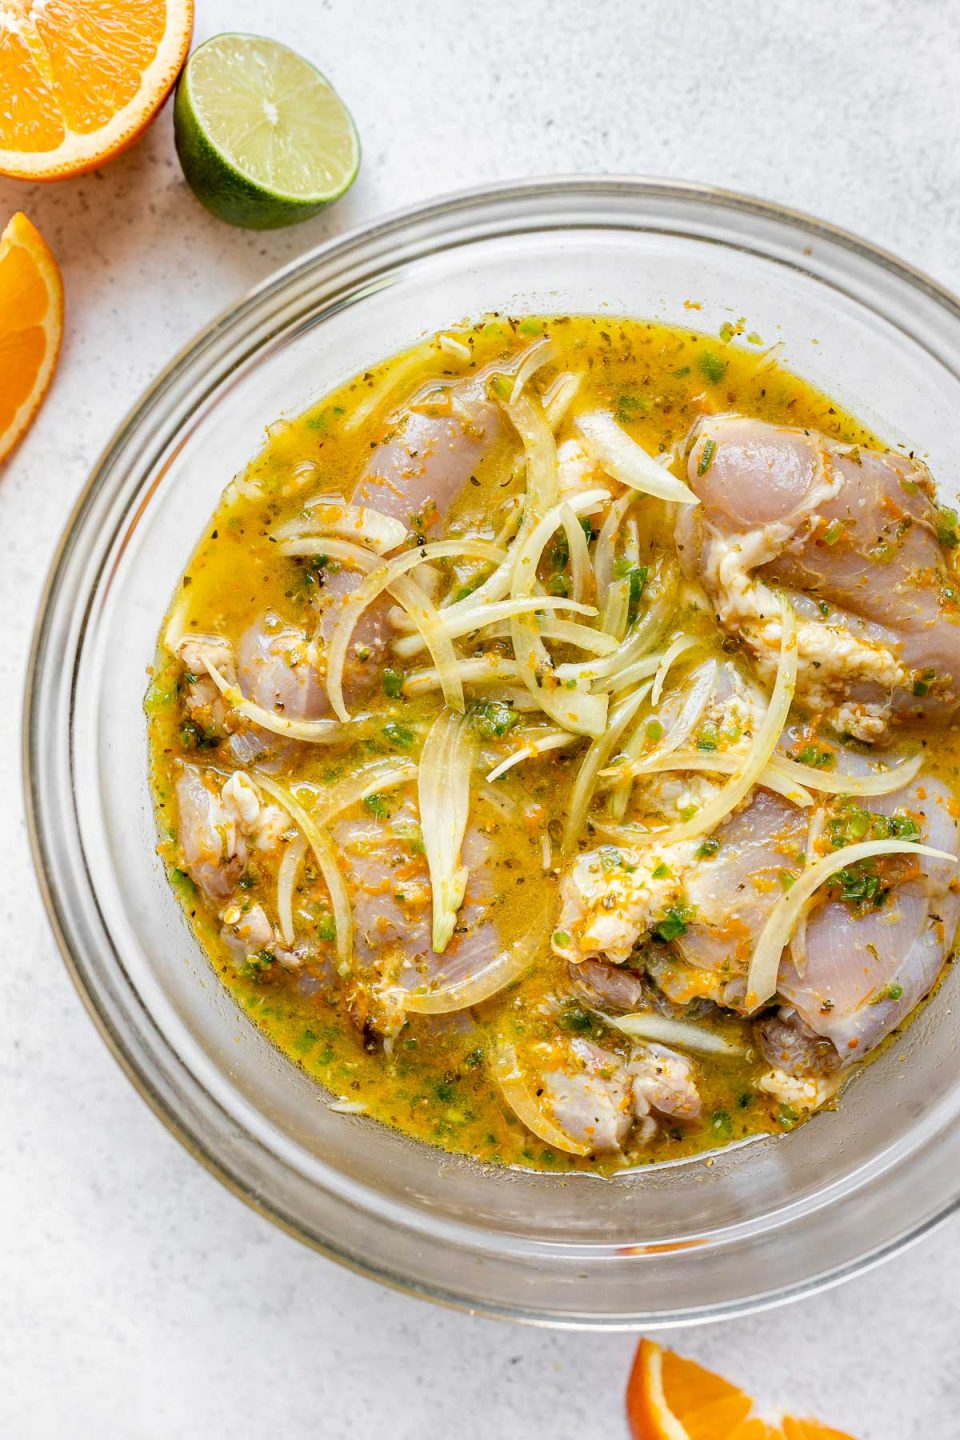 How to make chicken carnitas, Step 1: Chicken thighs & yellow onion marinating in citrus & jalapeno carnitas sauce in a large glass bowl, which sits atop a white surface next to sliced oranges & limes.